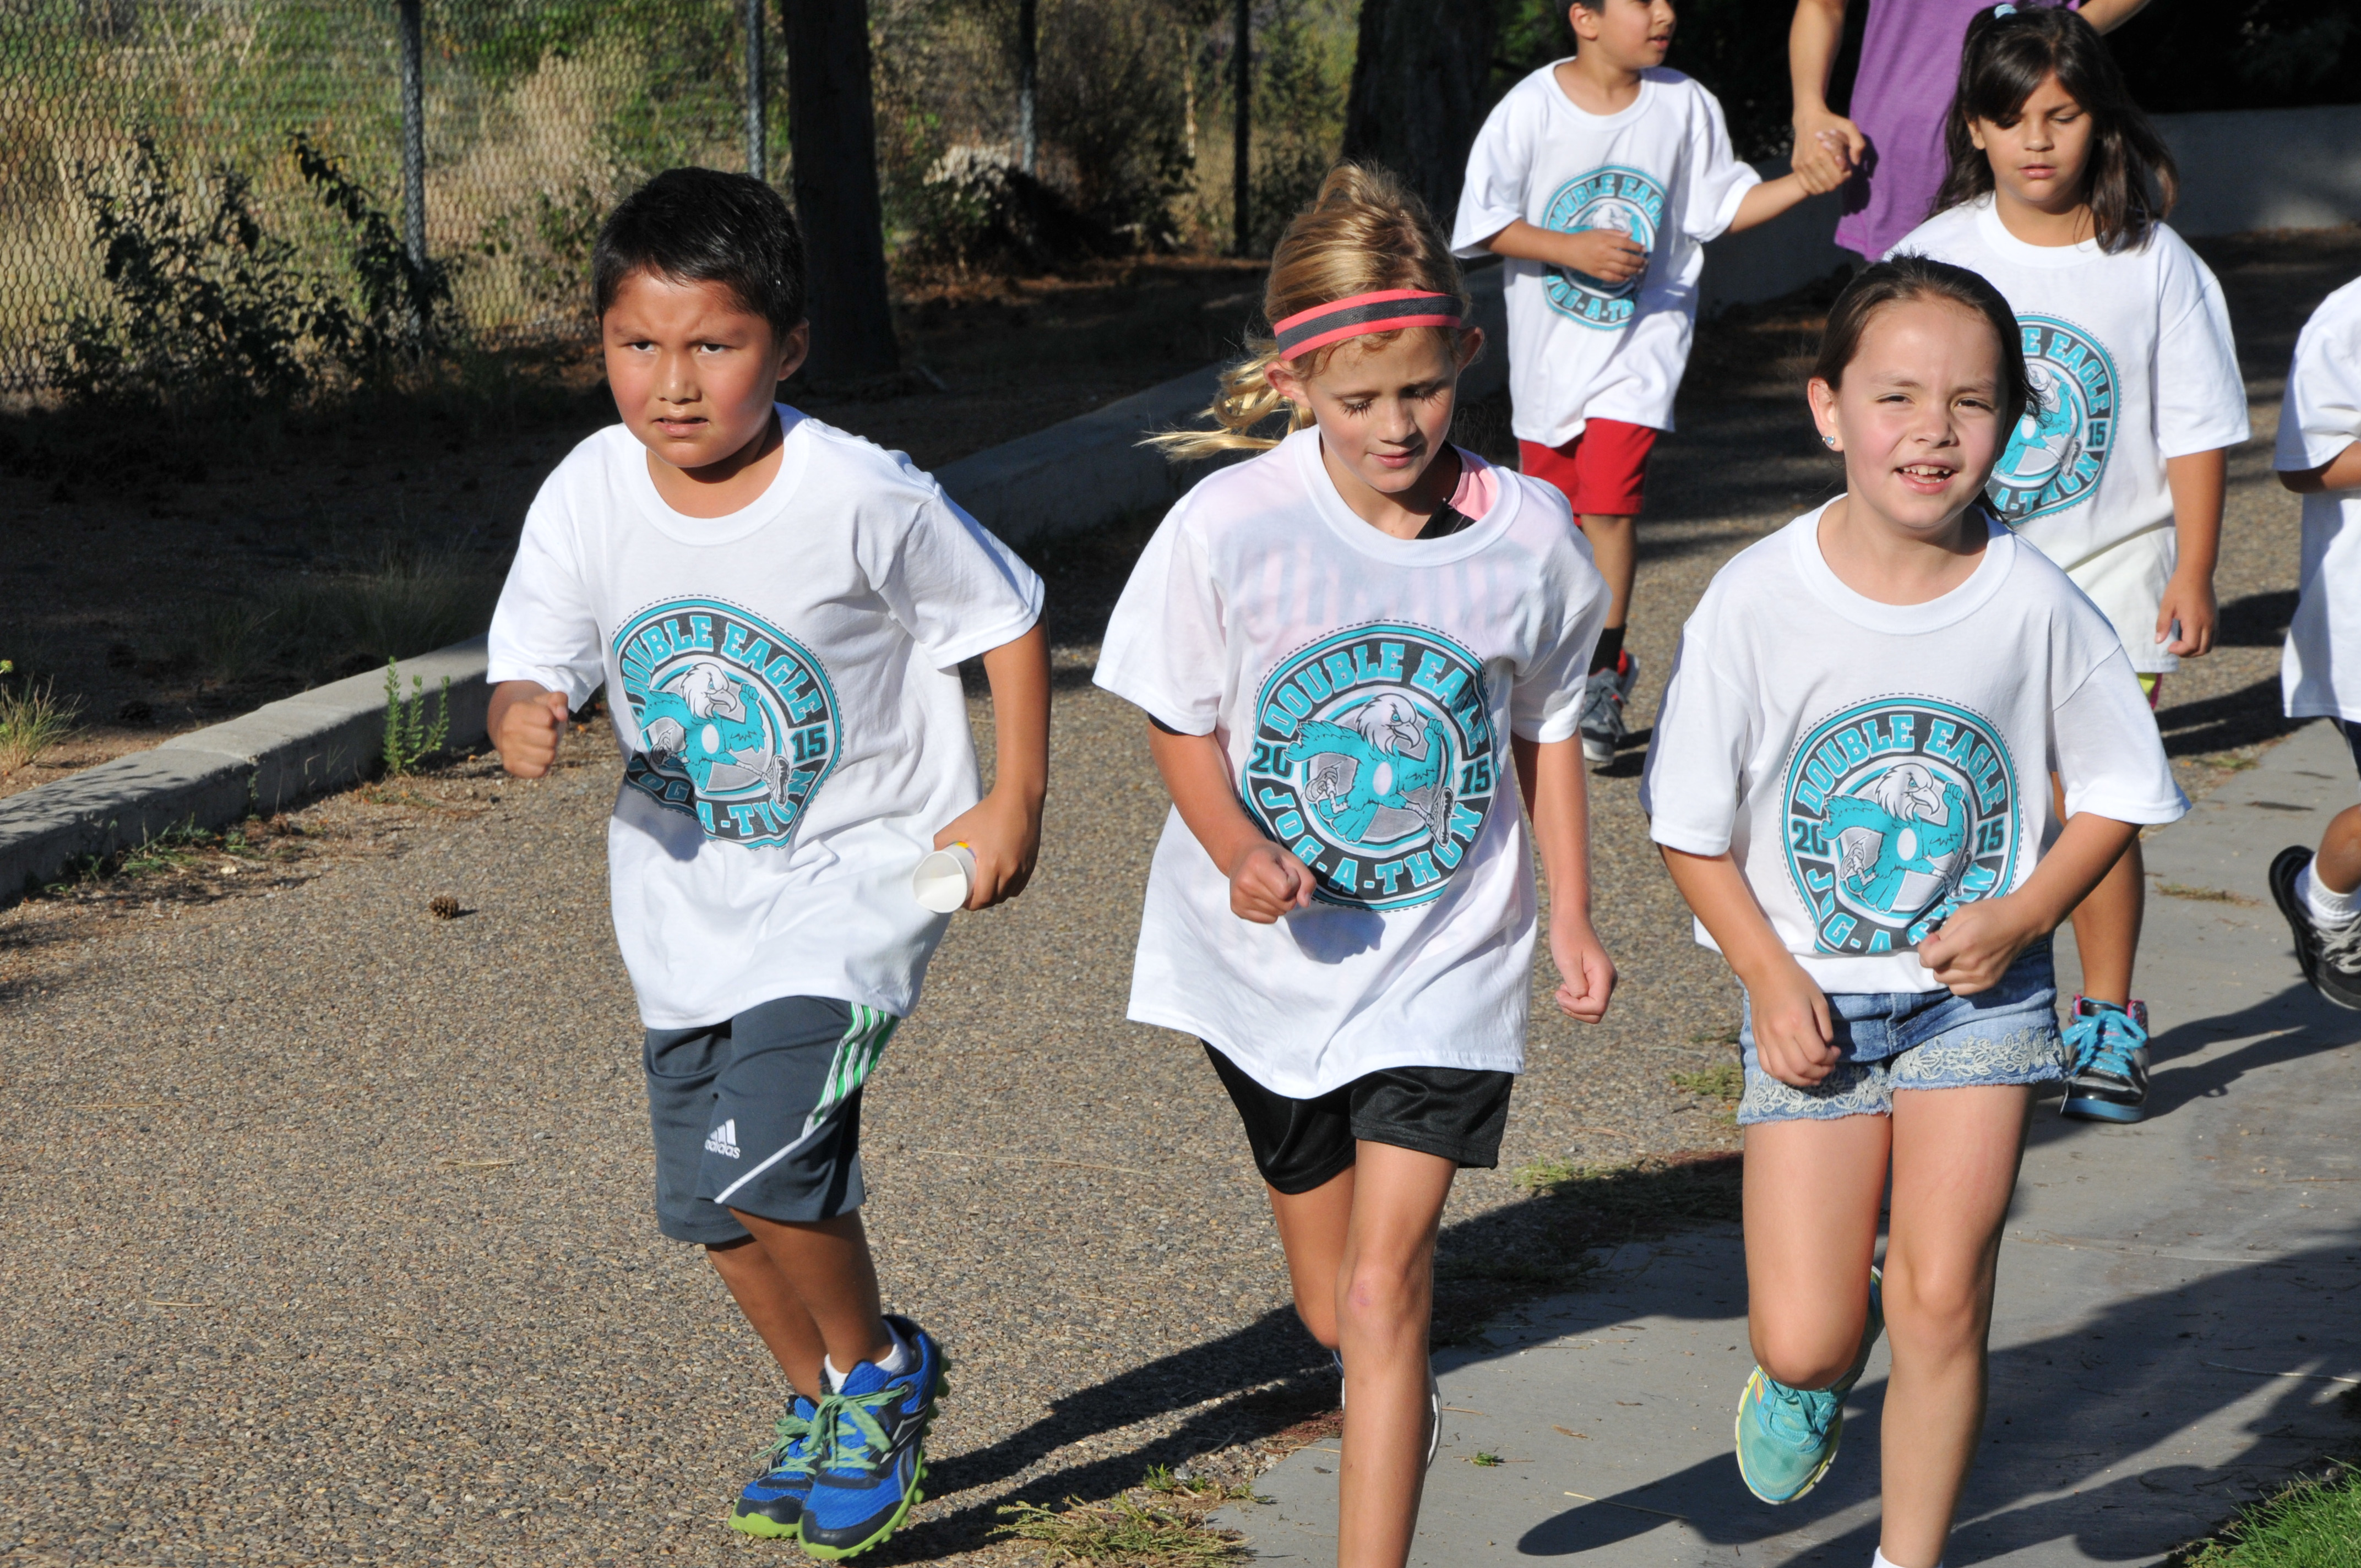 Jogging to Help Others